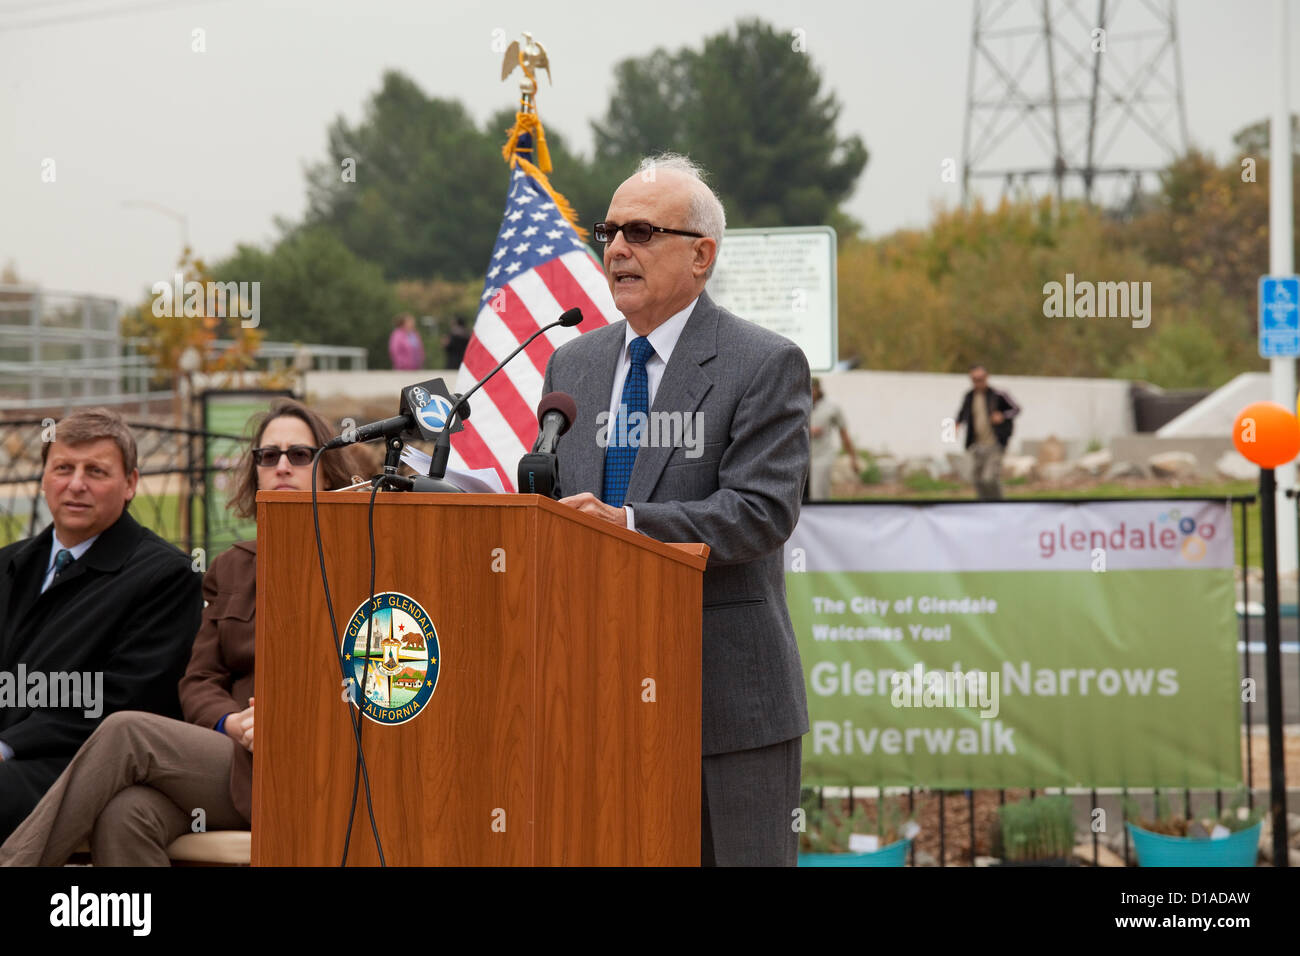 Glendale Mayor Frank Quintero. The Glendale Narrows Riverwalk opened on December 12, 2012 with a ribbon cutting - Stock Image